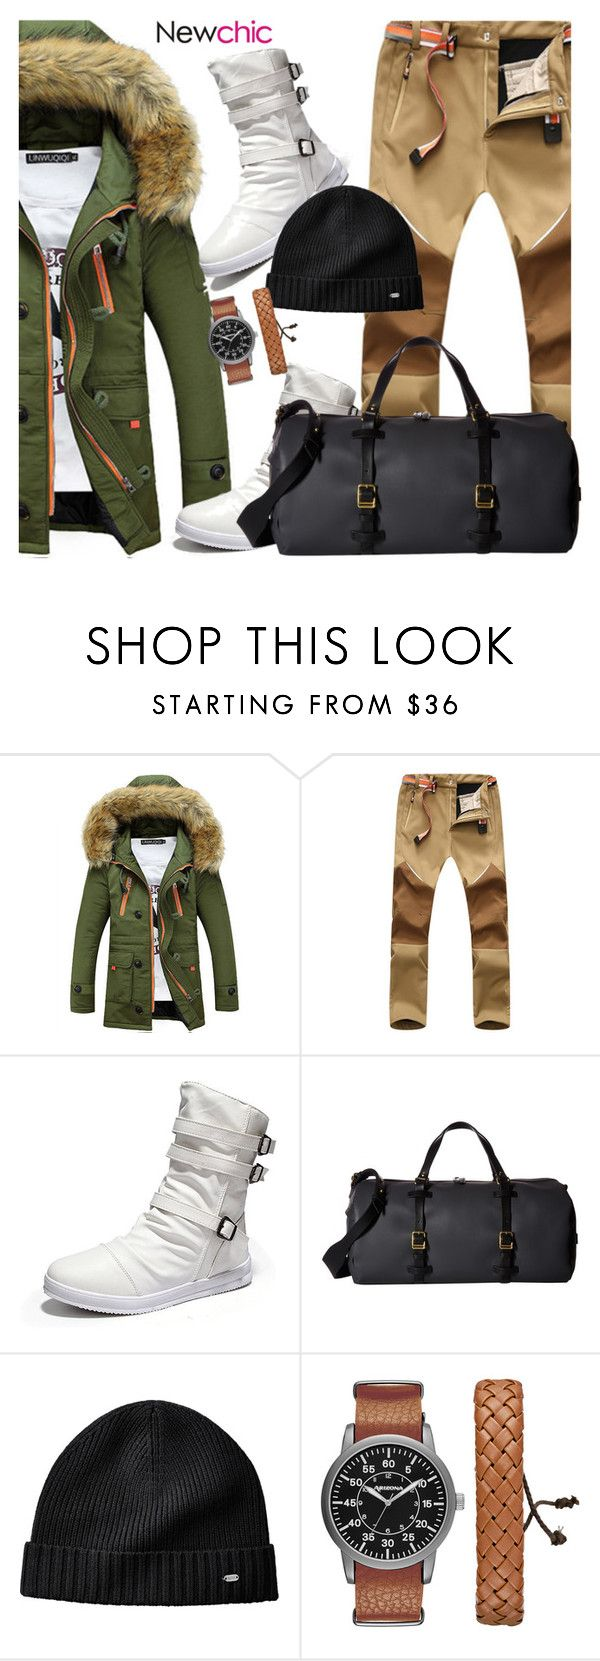 """NewChic 25: This Winter"" by bugatti-veyron ❤ liked on Polyvore featuring MIANSAI, Arizona, men's fashion and menswear"